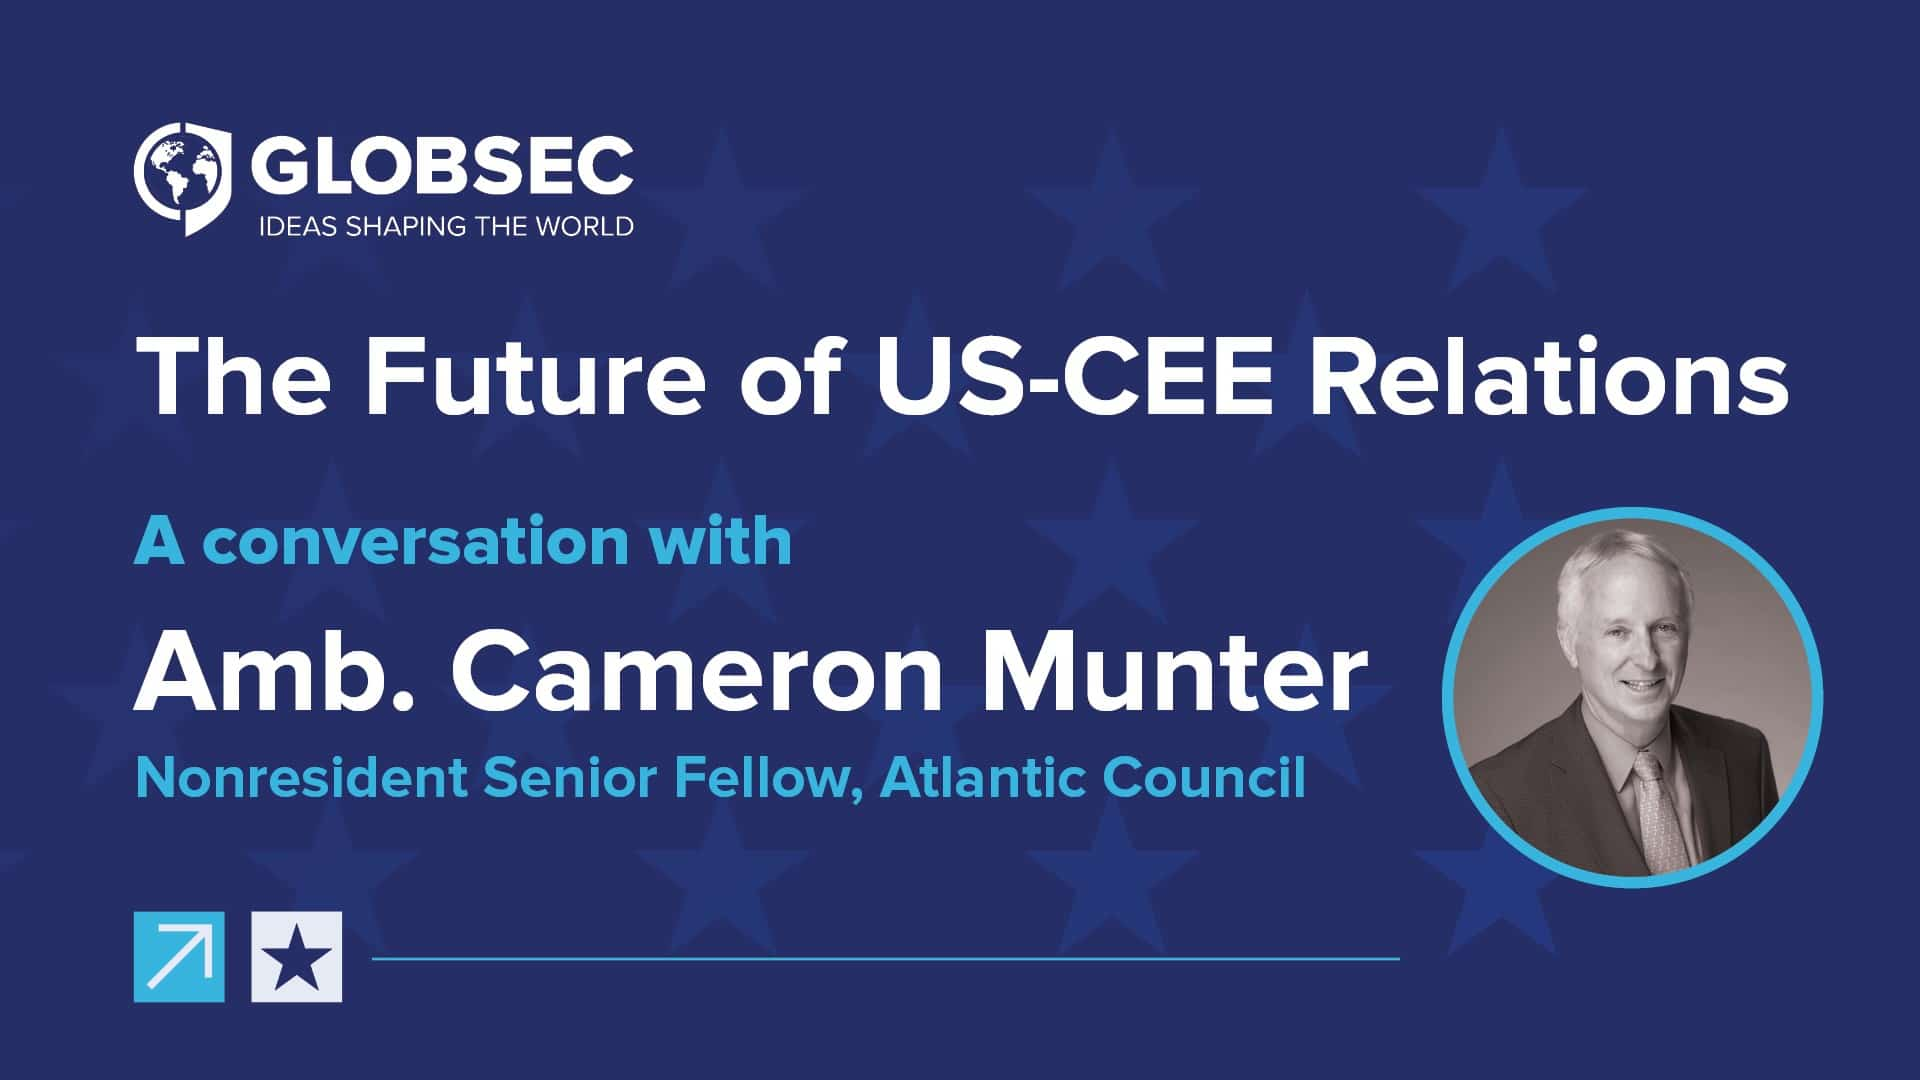 The Future of US-CEE Relations: Conversation with Amb. Cameron Munter